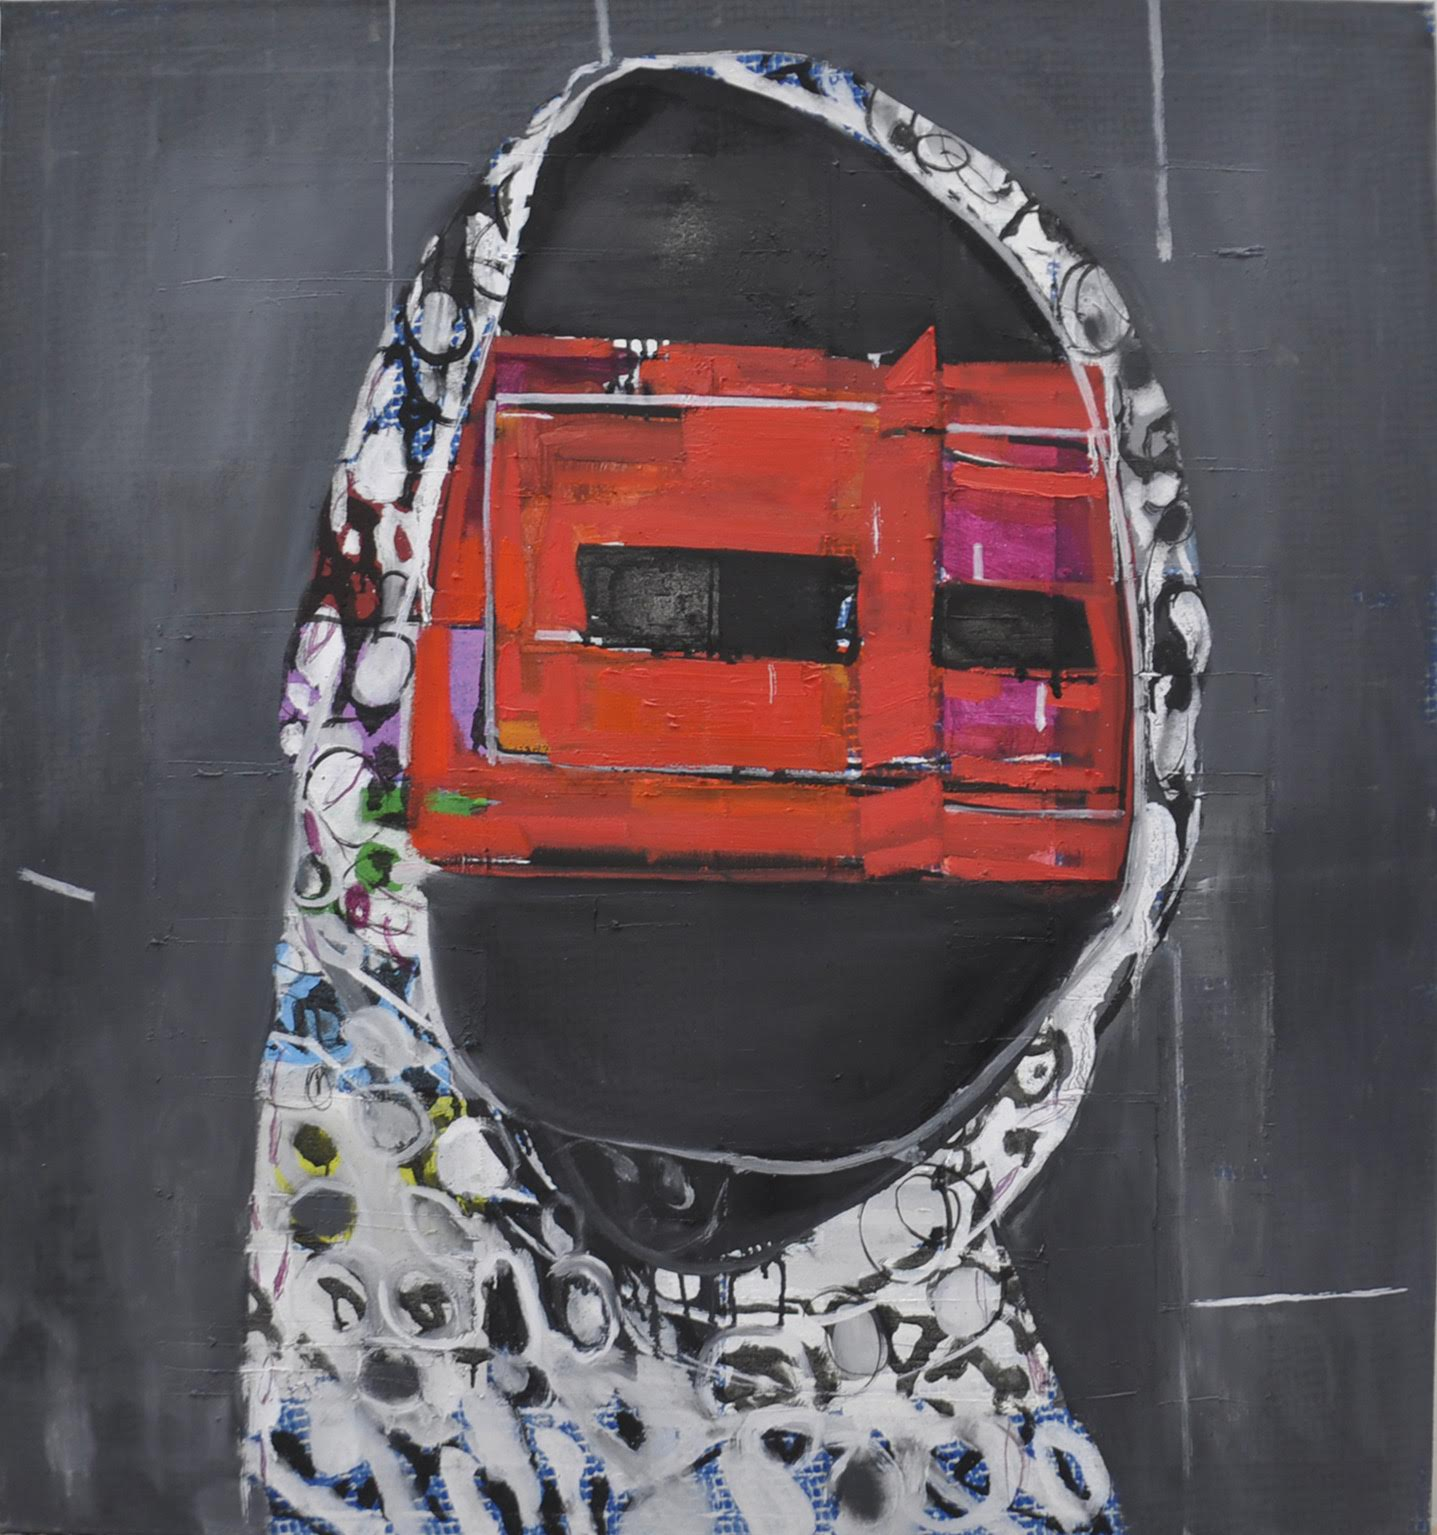 Matko Vekić, The Mask III, oil and varnish on canvas, 81x75 cm, 2015